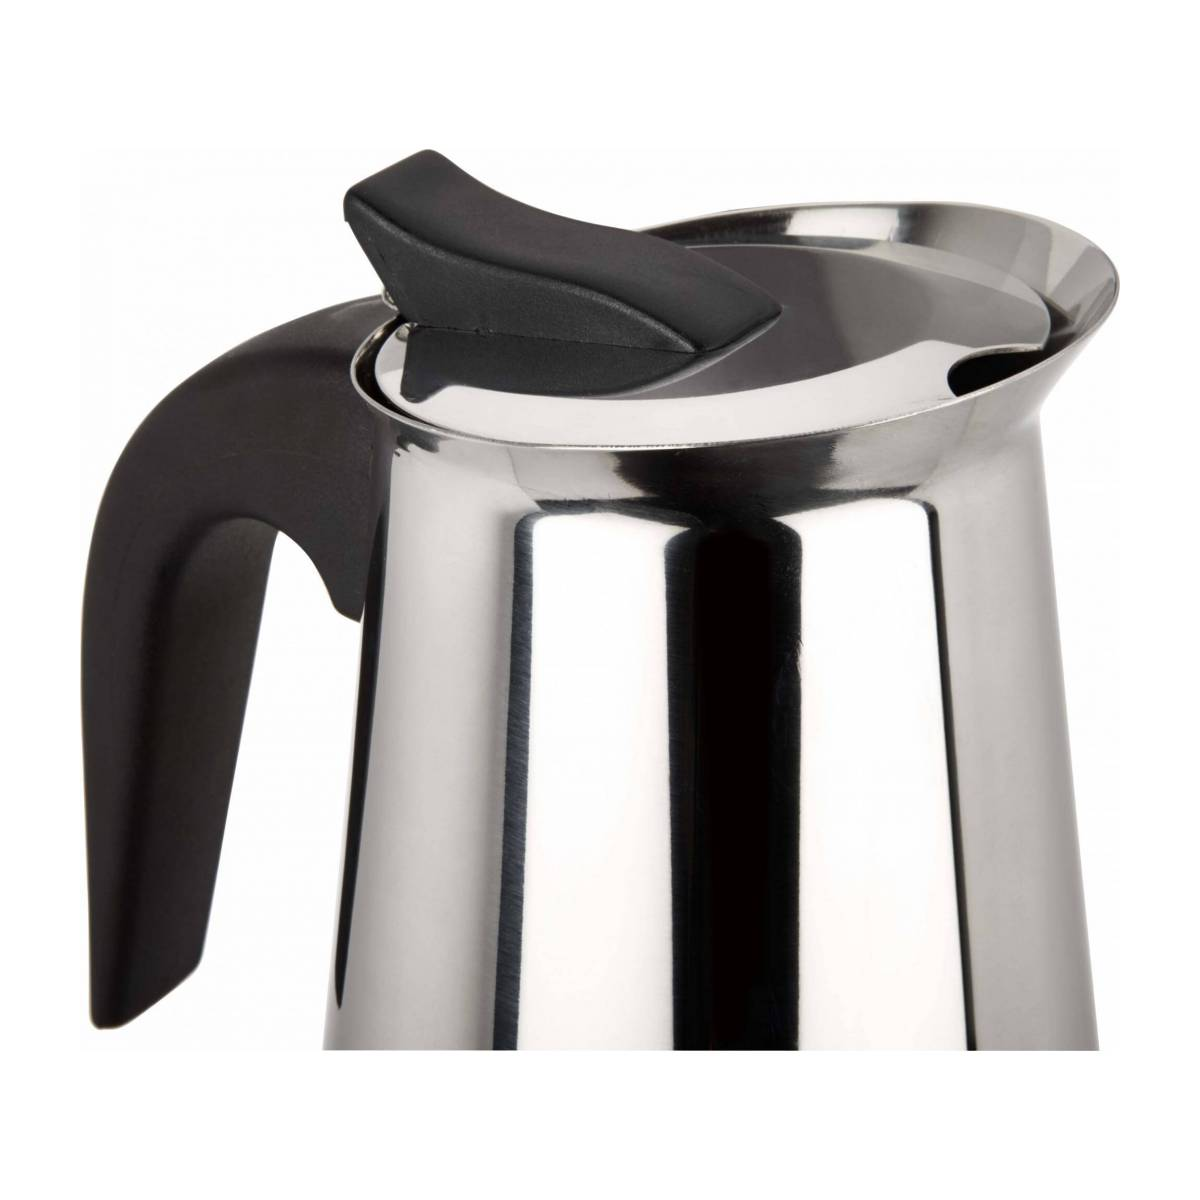 Stainless steel coffee maker n°7